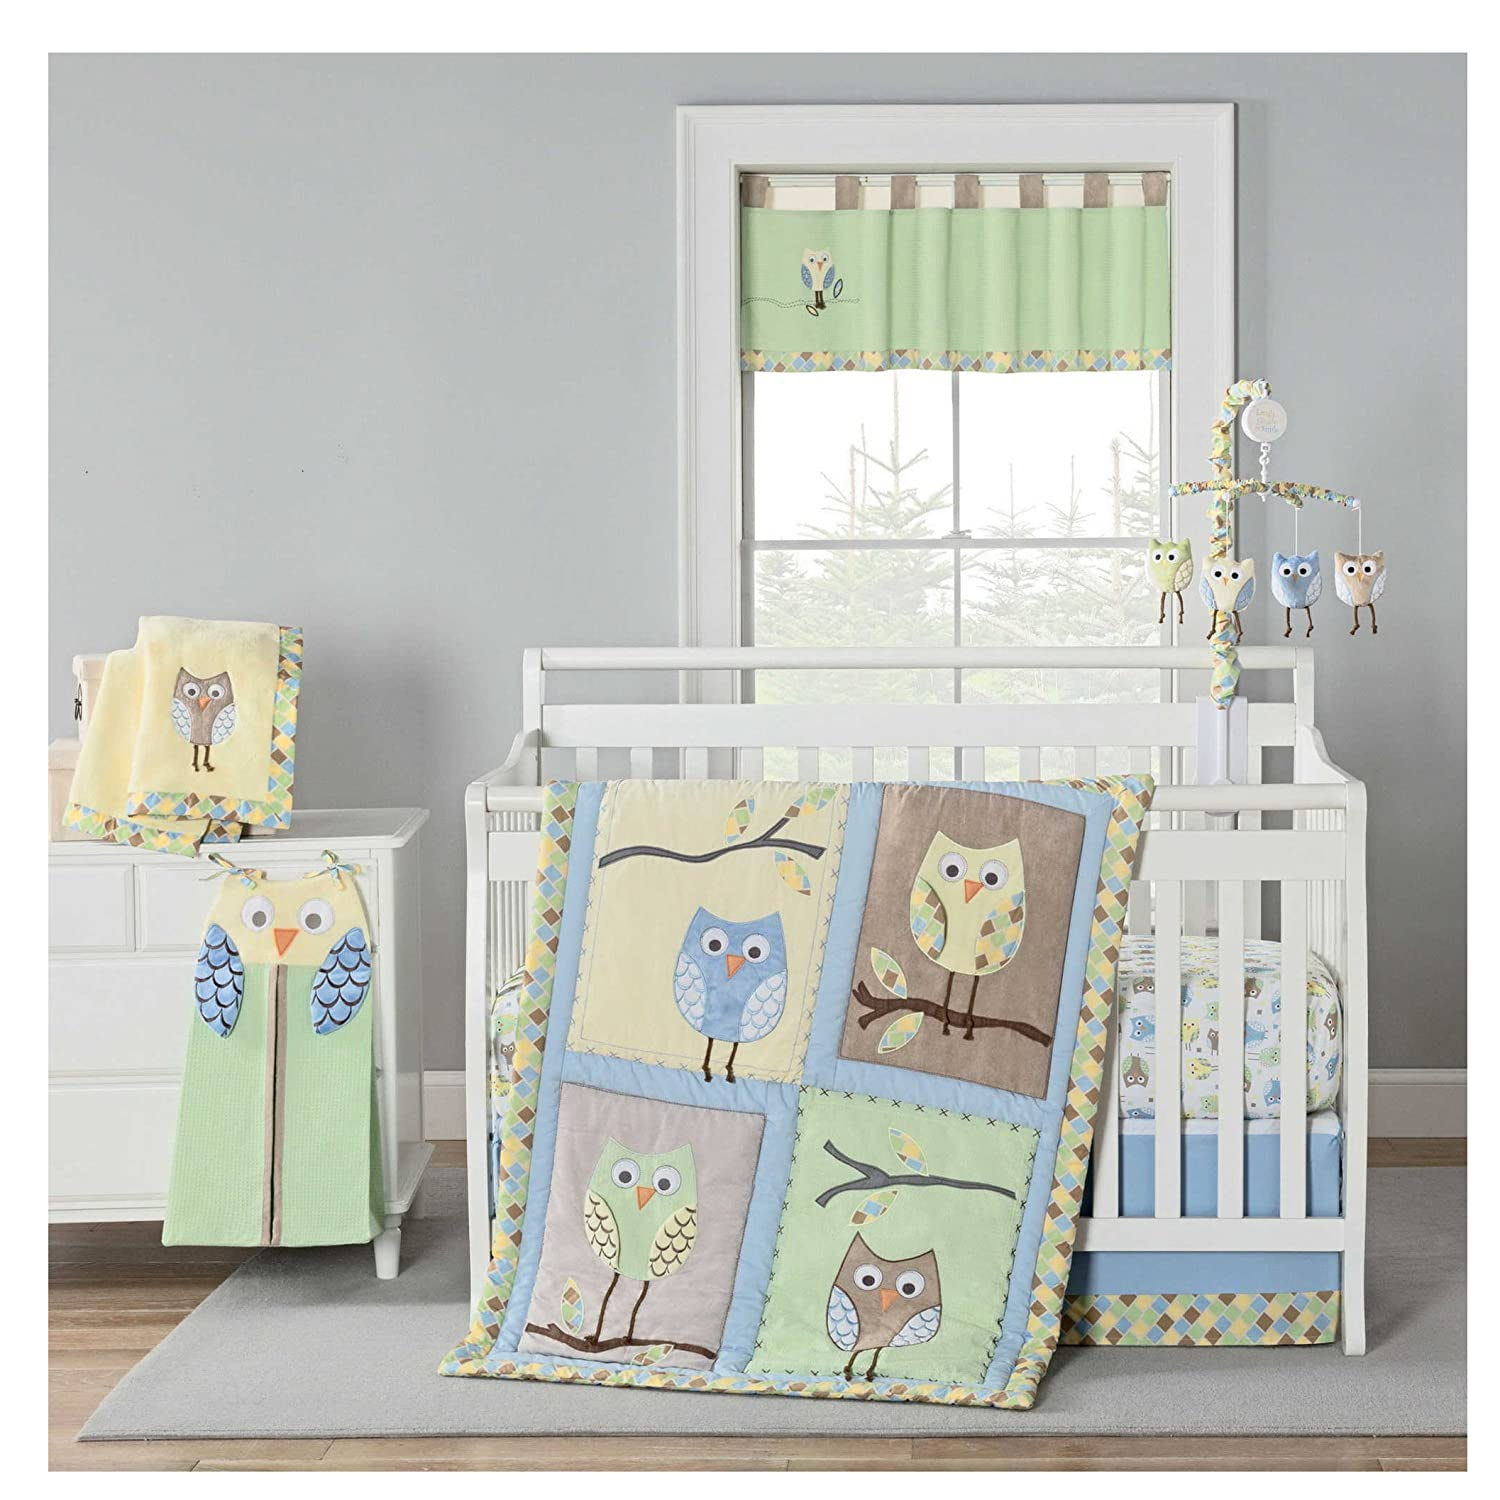 Baby Bedding Honest Baby Bedding Set Bumper Cotton Carton Print Soft